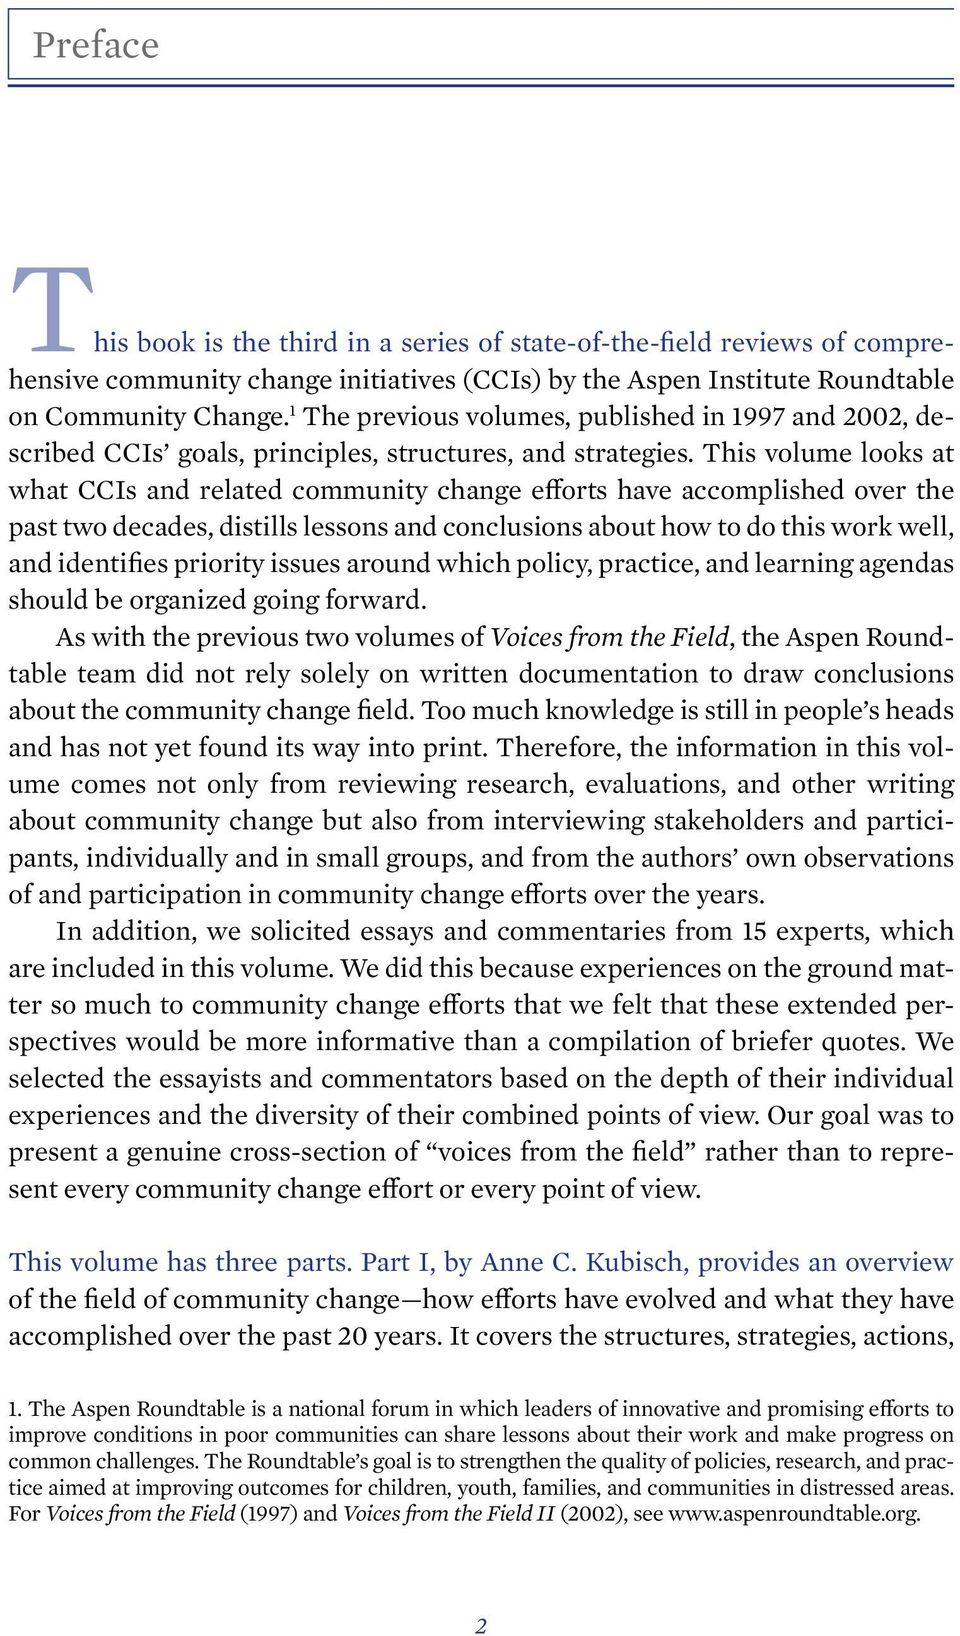 This volume looks at what CCIs and related community change efforts have accomplished over the past two decades, distills lessons and conclusions about how to do this work well, and identifies